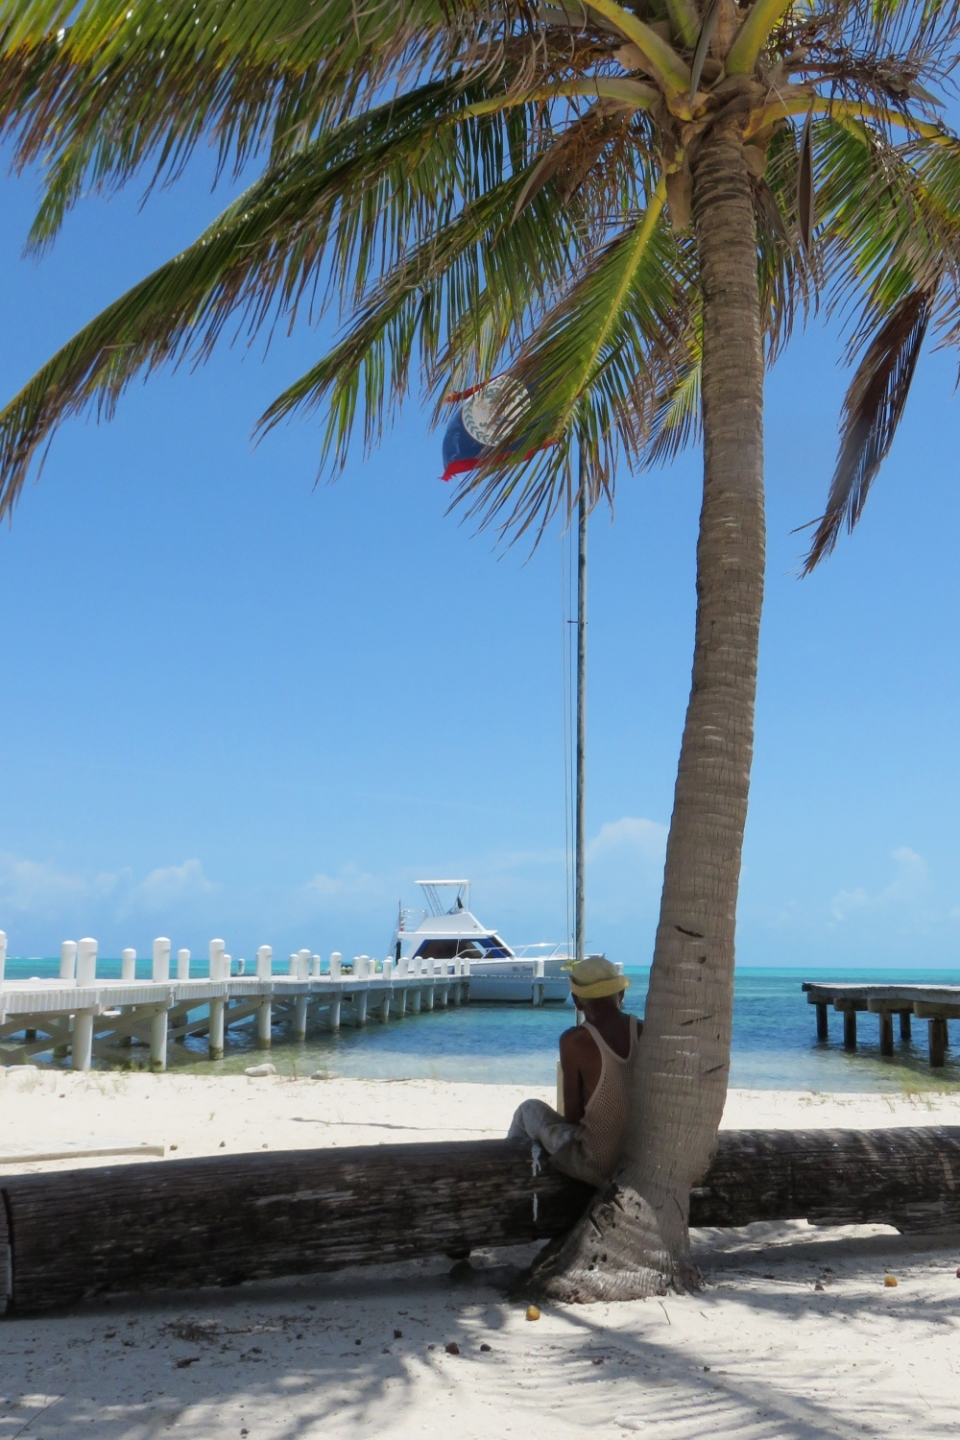 Snorkeling Belize's Blue Hole: This Trip Is SO MUCH MORE